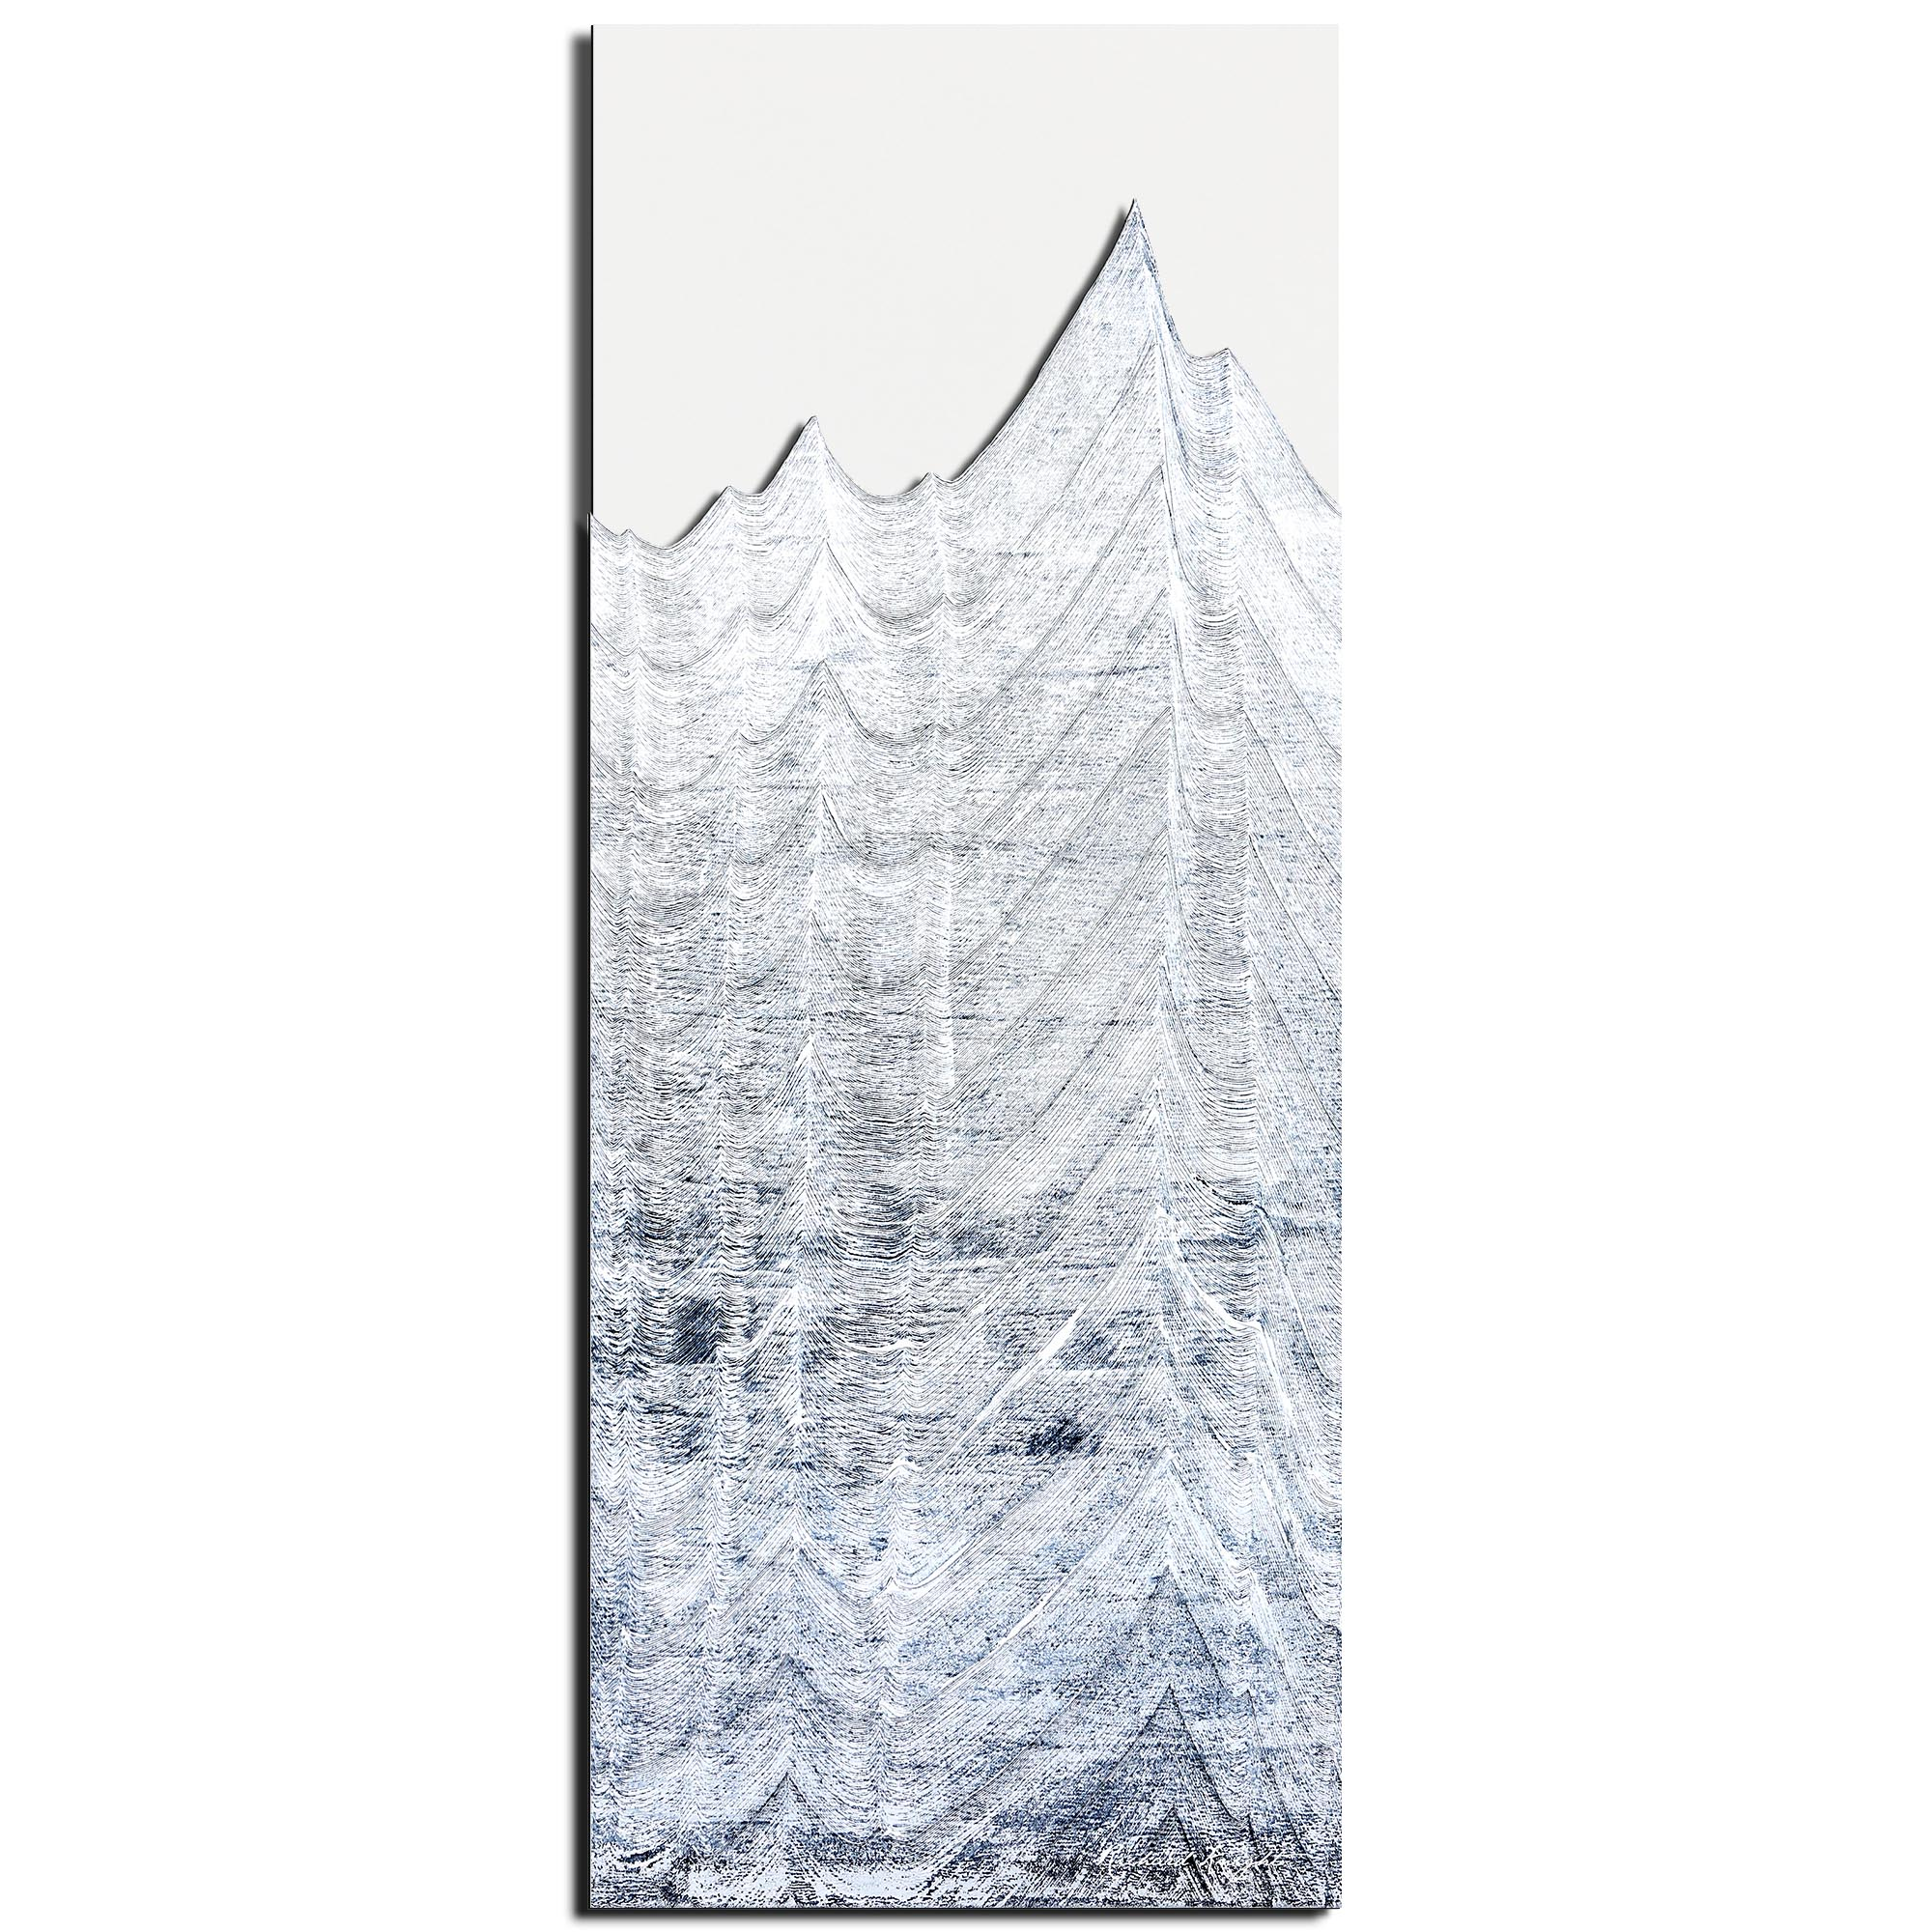 Richard Knight 'Whitewashed Peaks' 19in x 48in Abstract Landscape Art on Polymetal